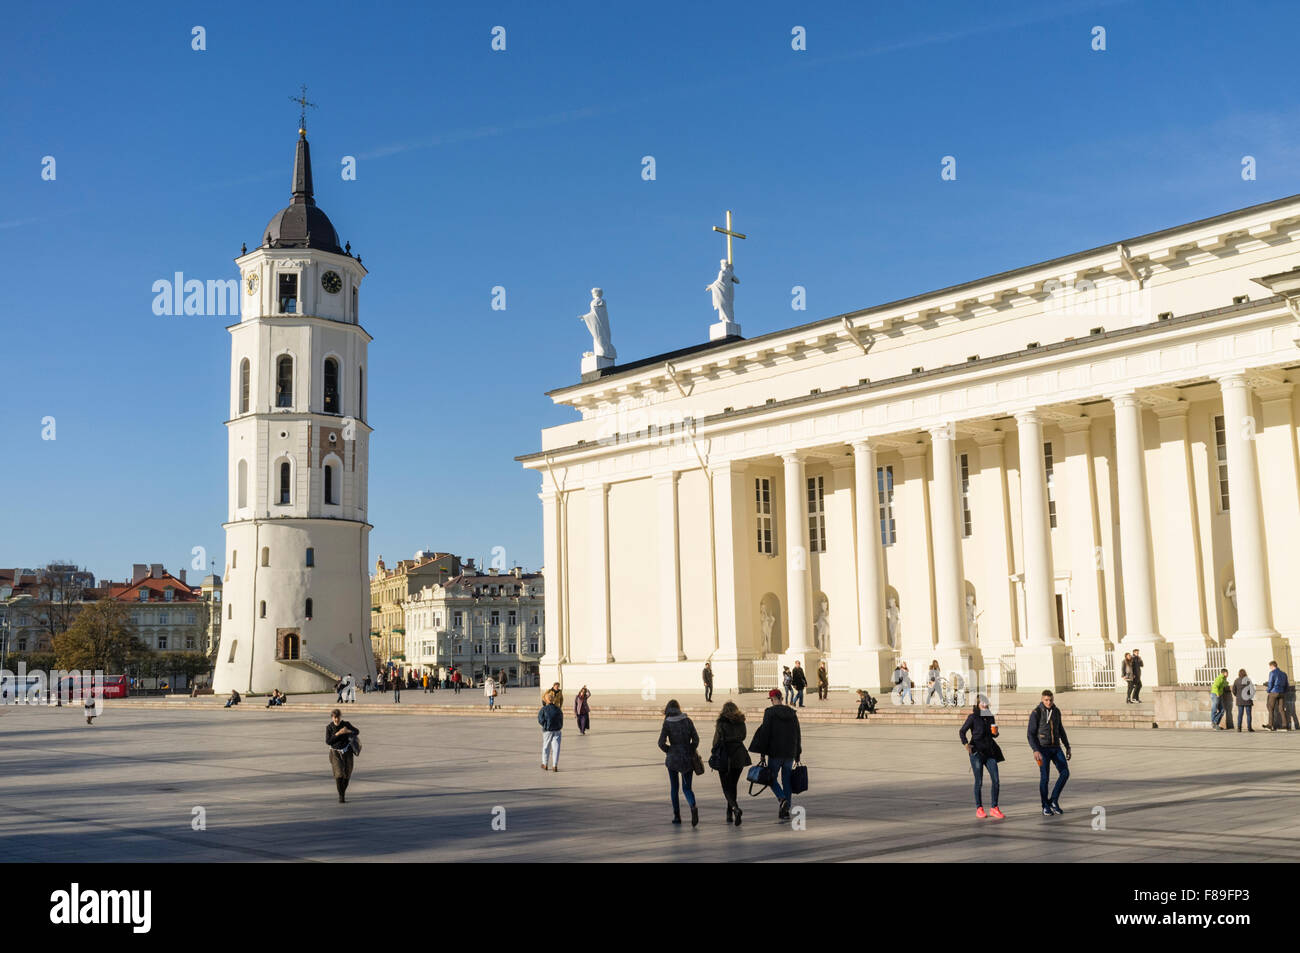 Vilnius Cathedral and belfry at Cathedral Square, Vilnius, Lithuania, Europe - Stock Image